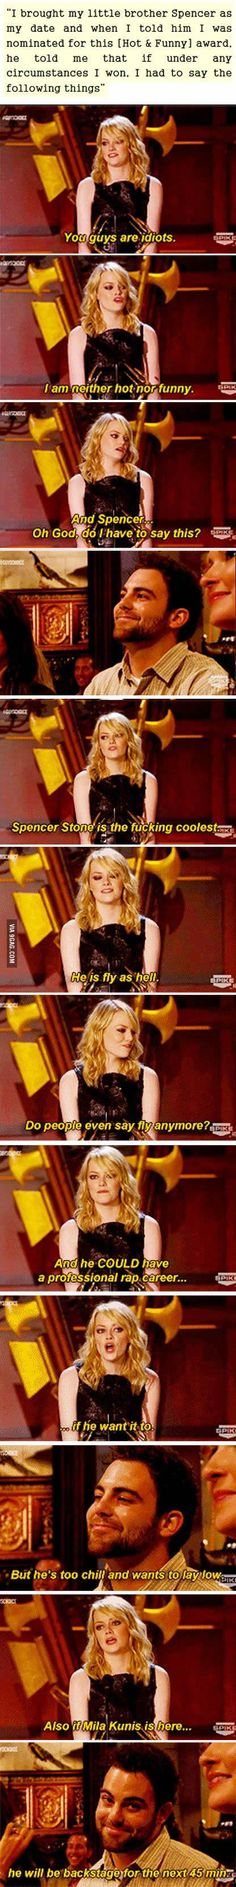 Emma Stone is by far the best sister ever. She and I are best friend soulmates.